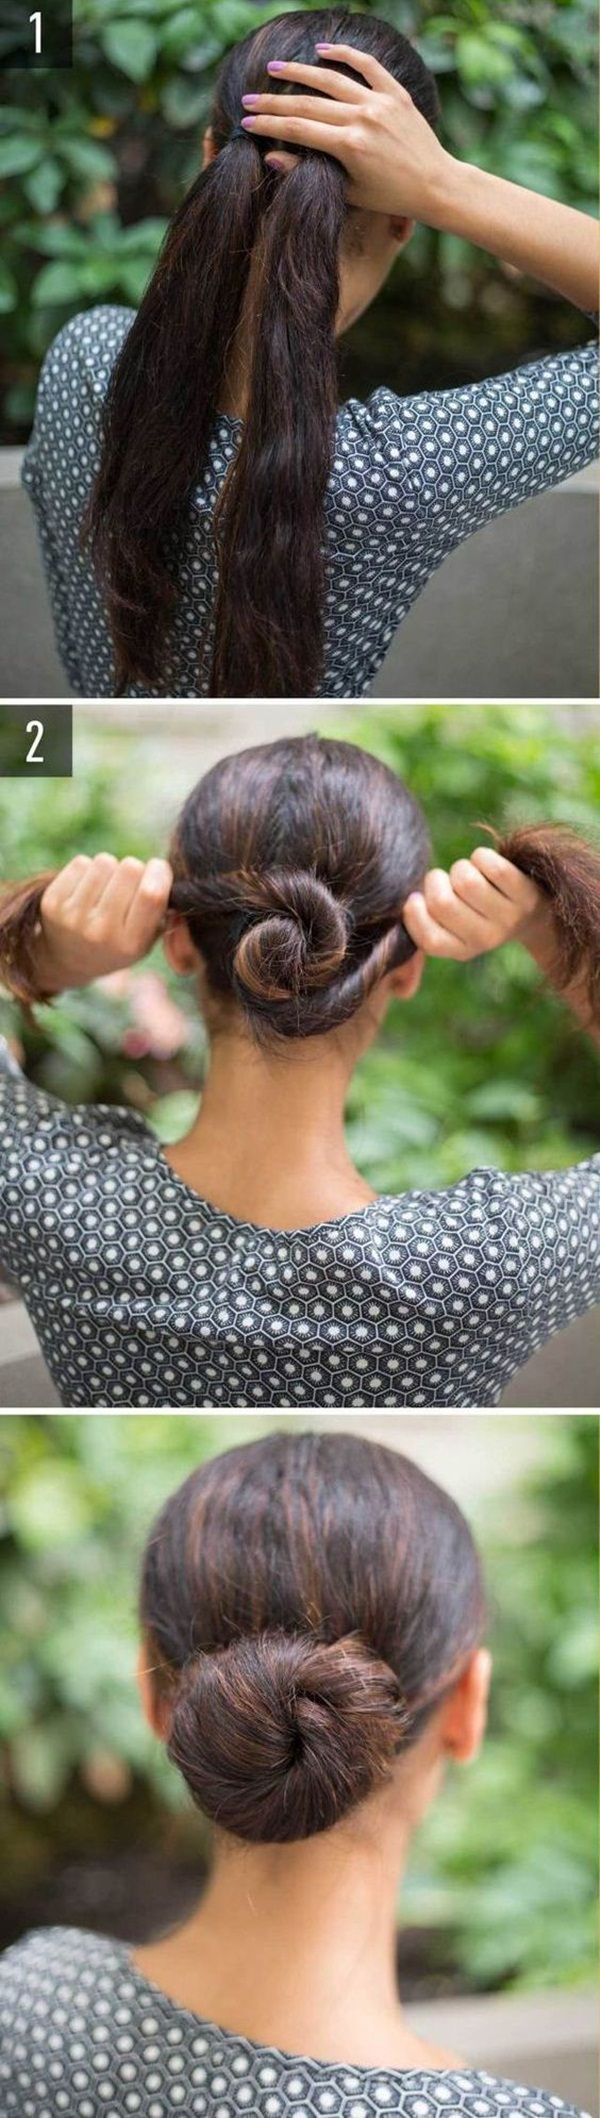 Hair care everything you need to know easy hairstyles school